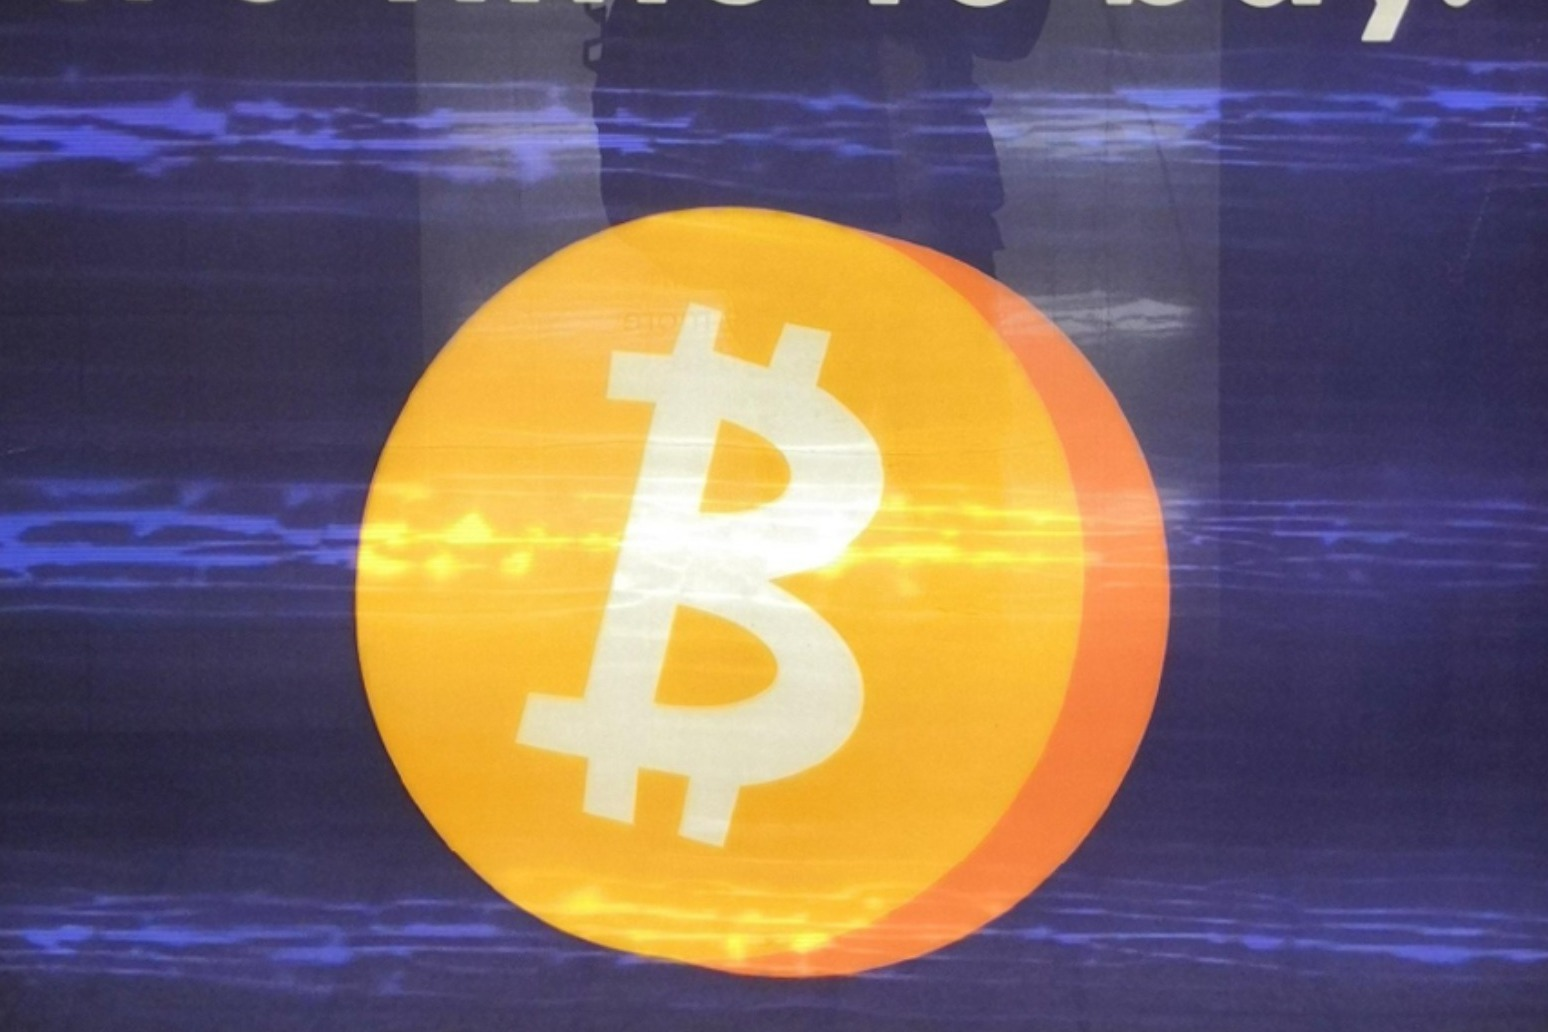 Terrorist jailed after using Bitcoin to pay smugglers helping fellow IS members